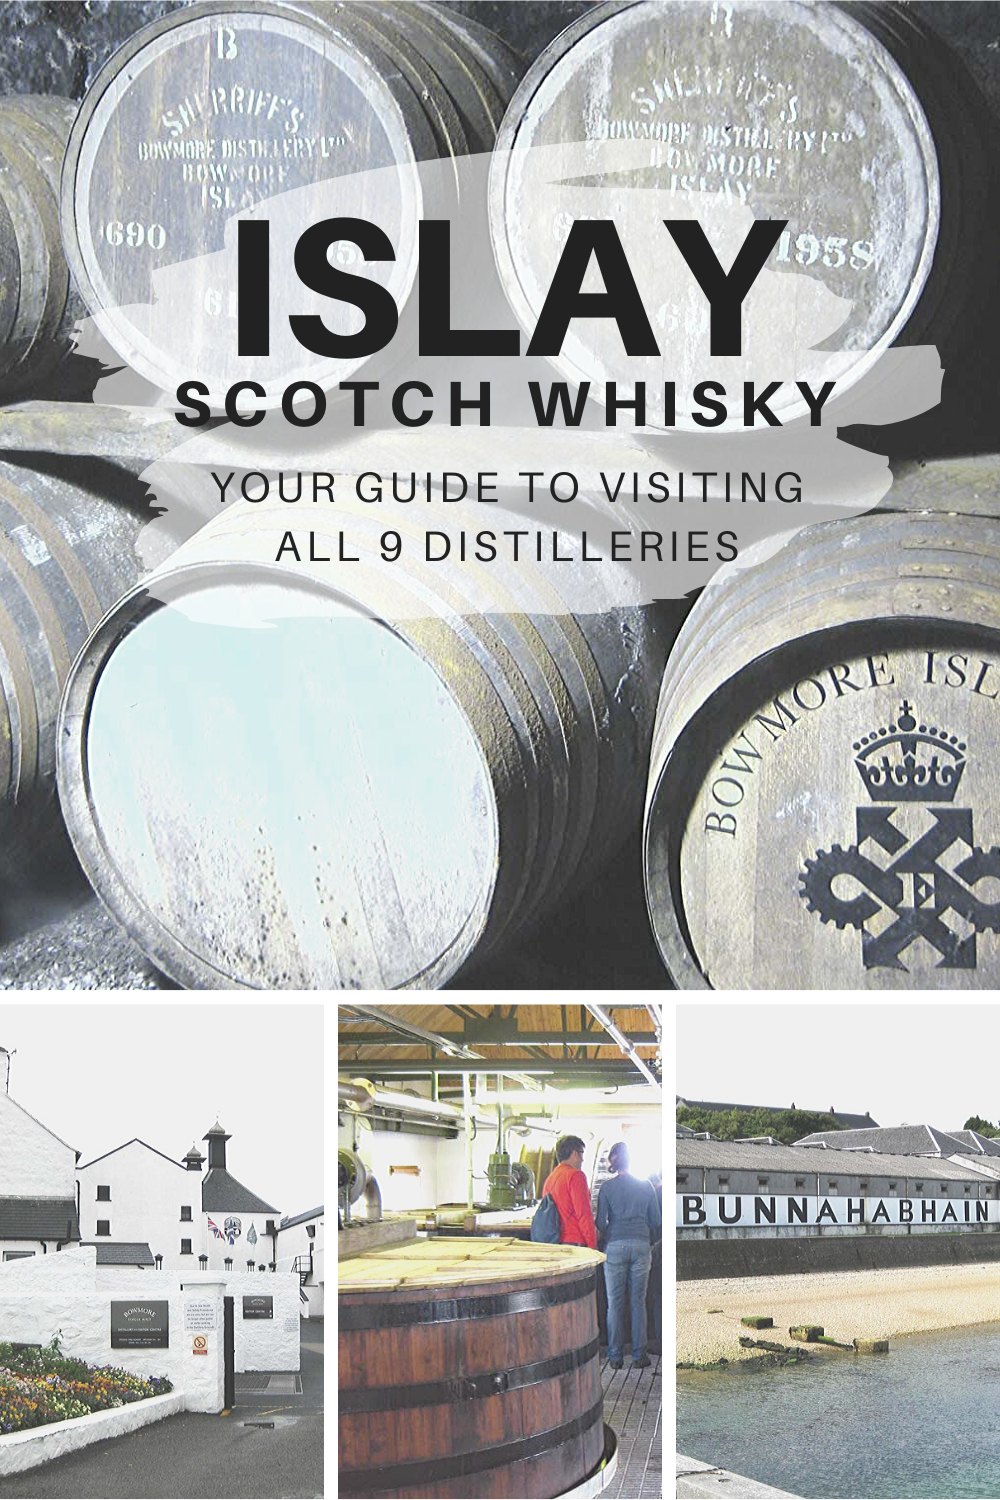 ISLAY Scotch Whisky Distilleries: Visit them all!